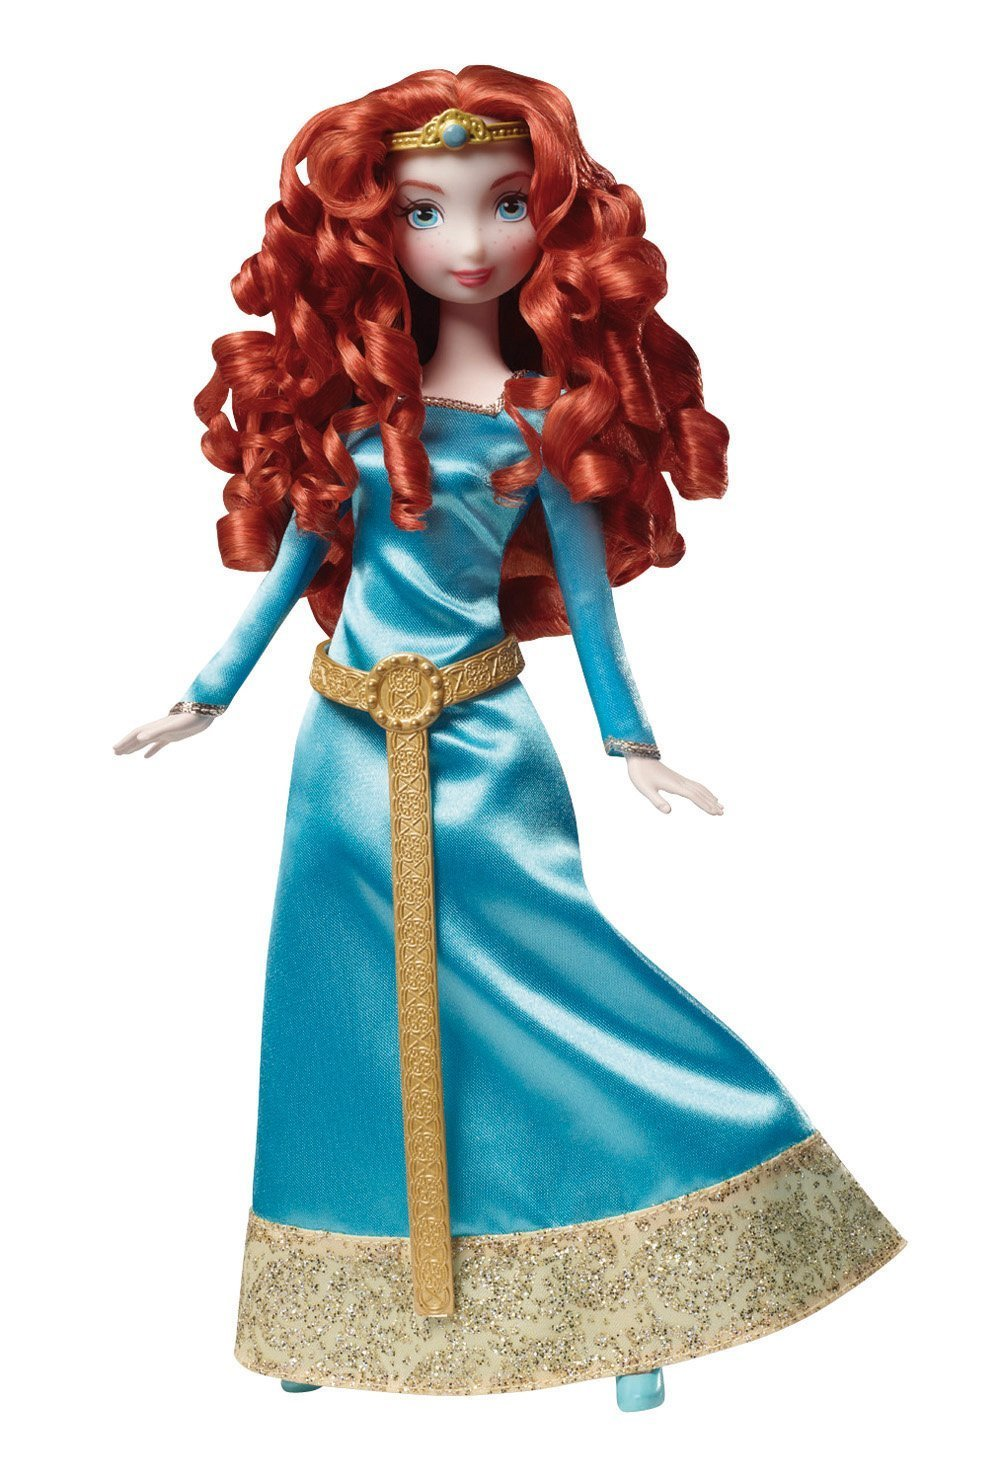 Disney pixar brave merida doll